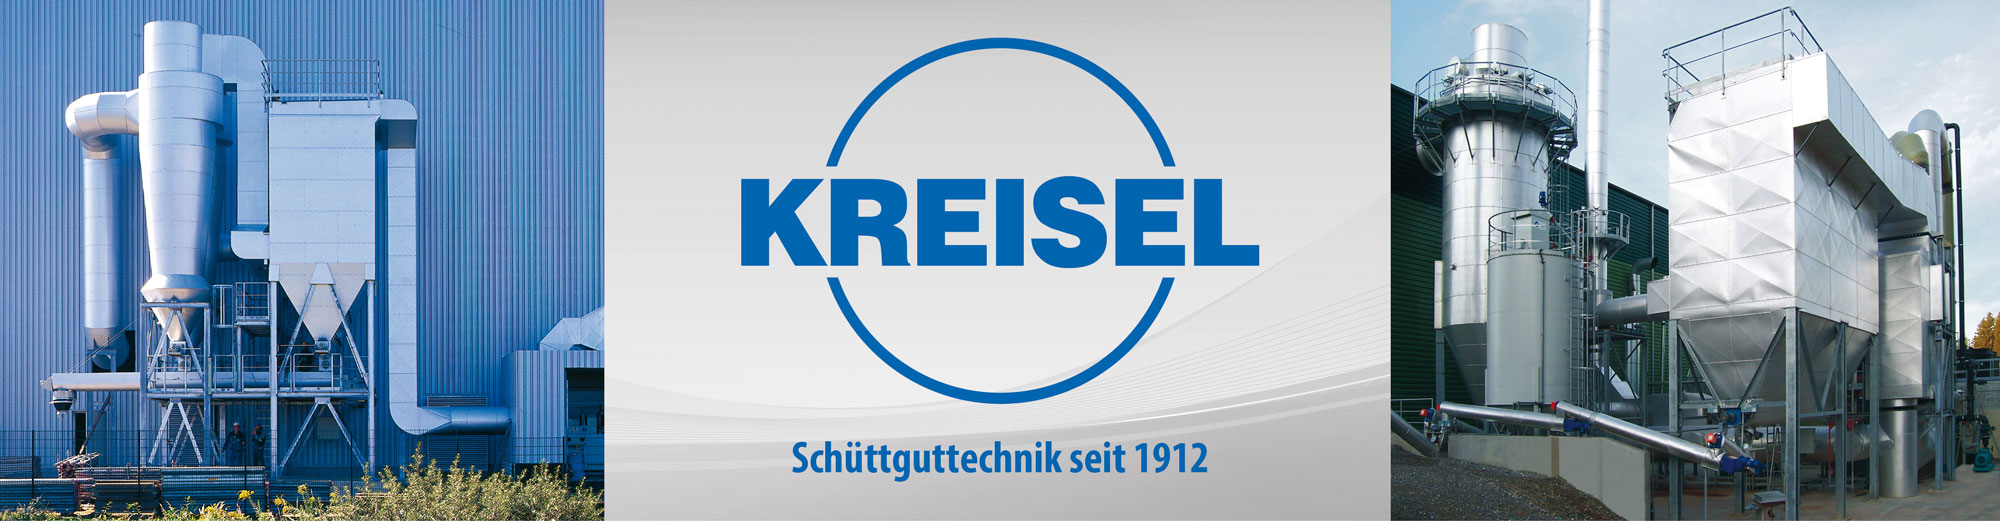 kreisel gmbh co kg jobs oberlausitz. Black Bedroom Furniture Sets. Home Design Ideas